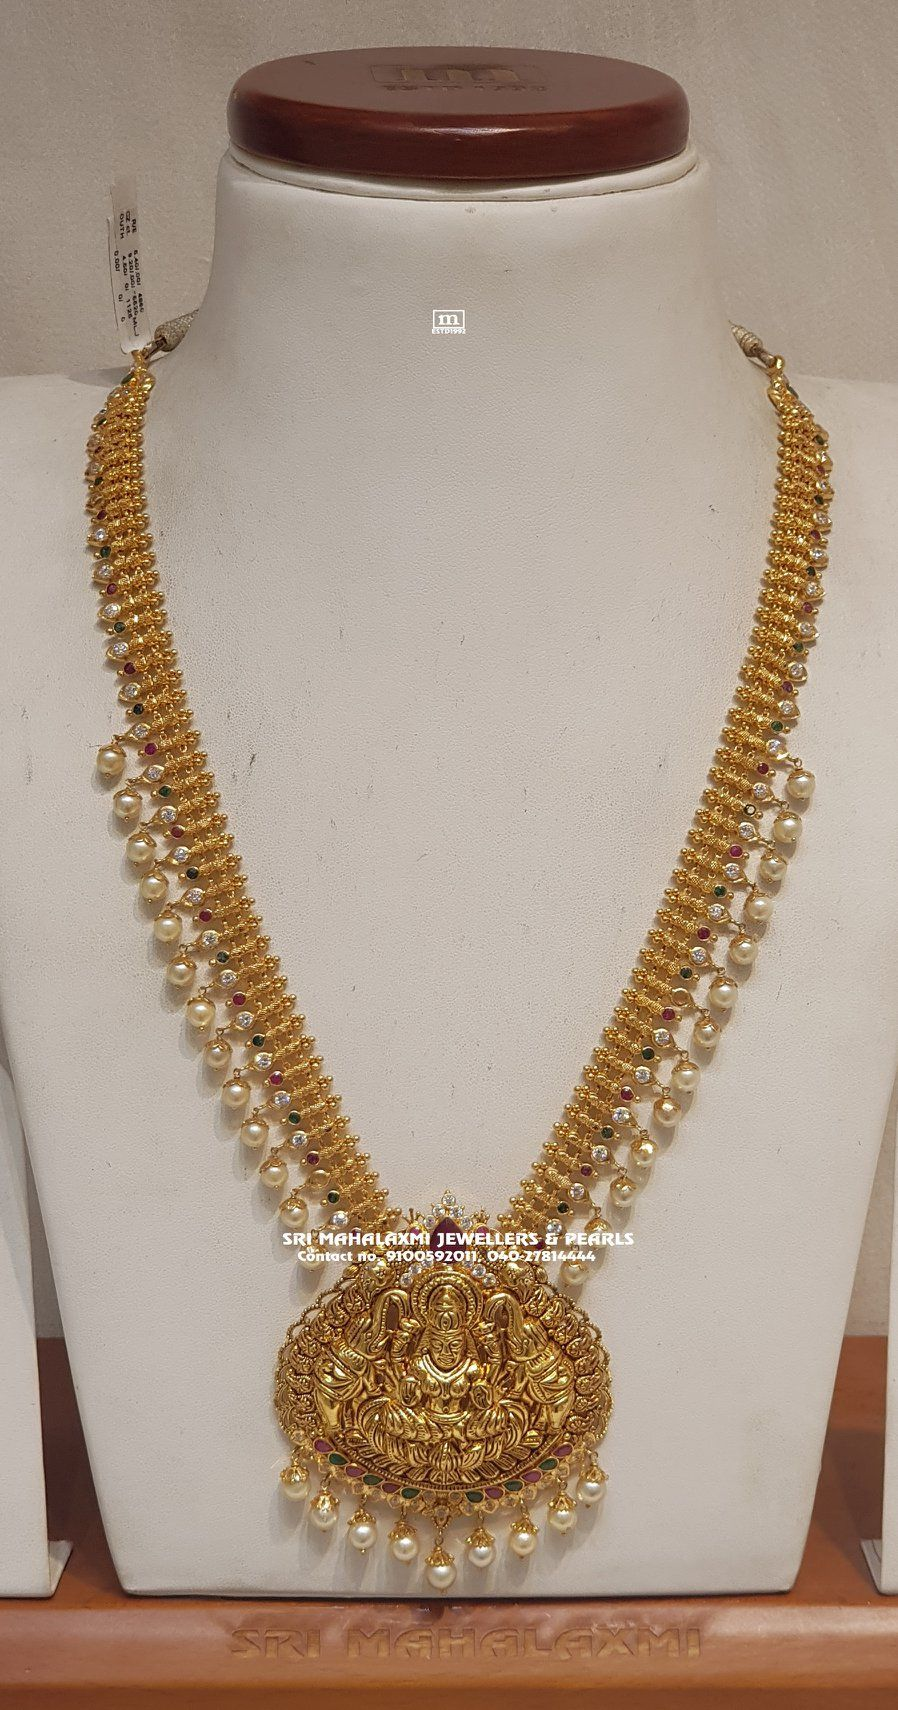 Wedding decorations set october 2018 Presenting here is an exclusive nakshi workmanship light weight Long